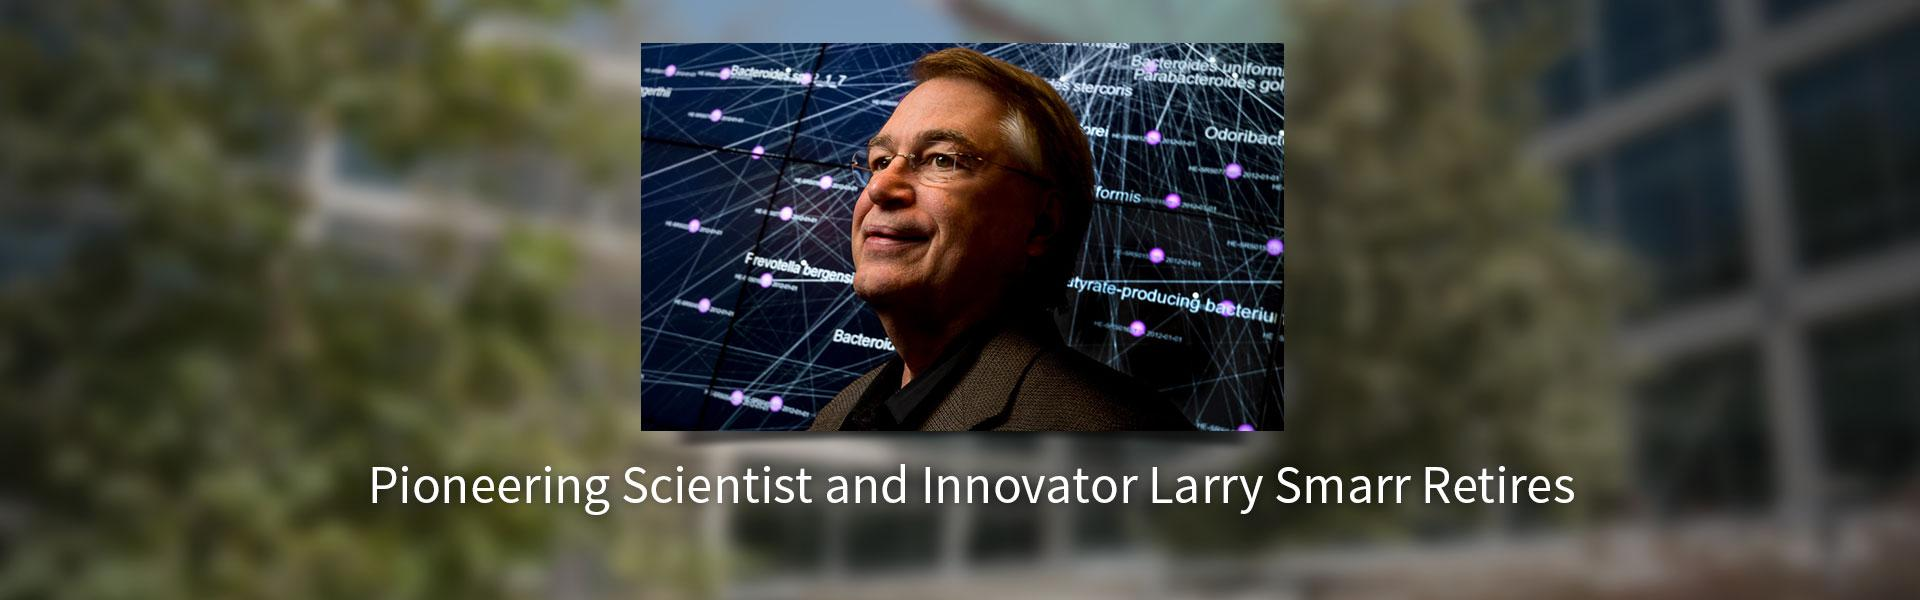 Pioneering Scientist and Innovator Larry Smarr Retires